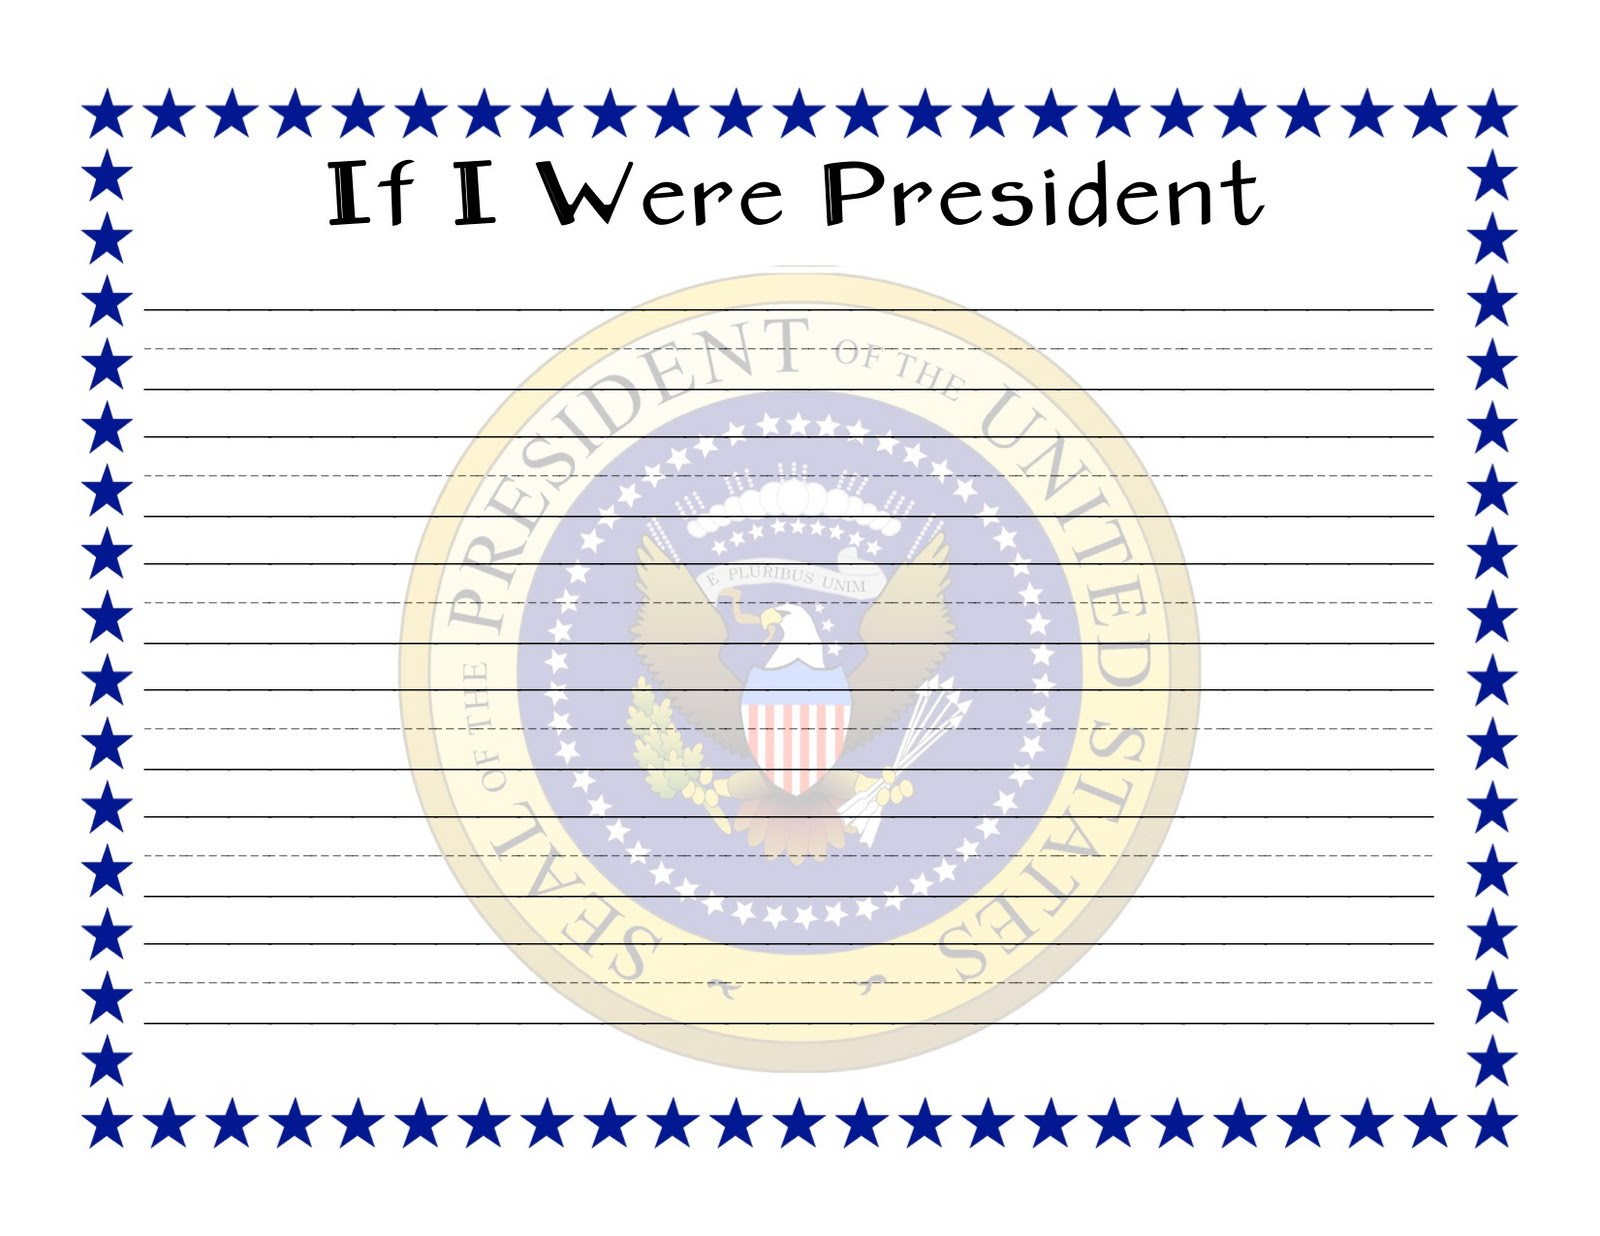 If i were president essay